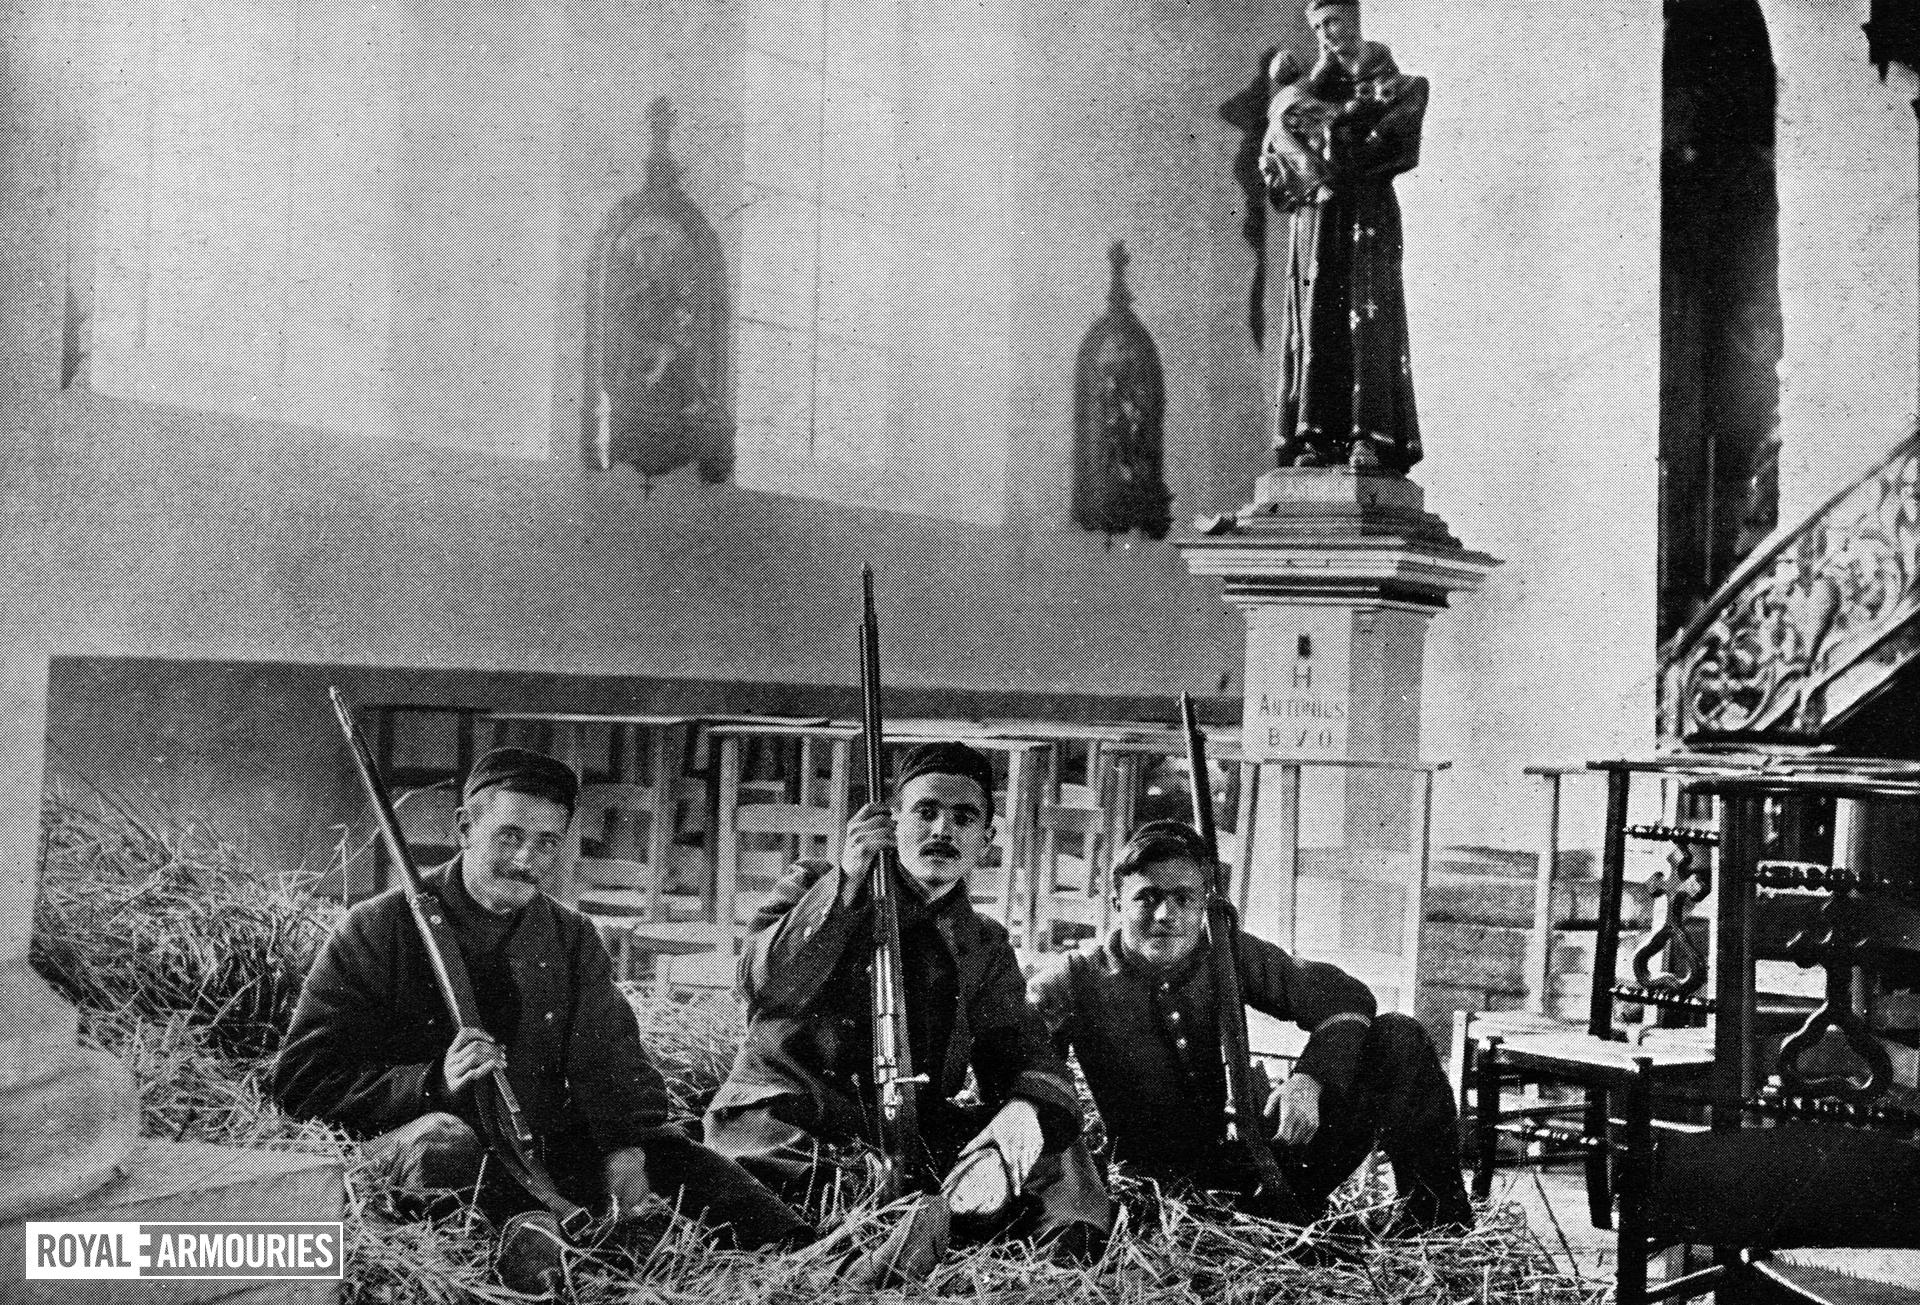 Belgian soldiers with Mauser rifles billeted at a church near Louvain, Belgium, 19 August 1914